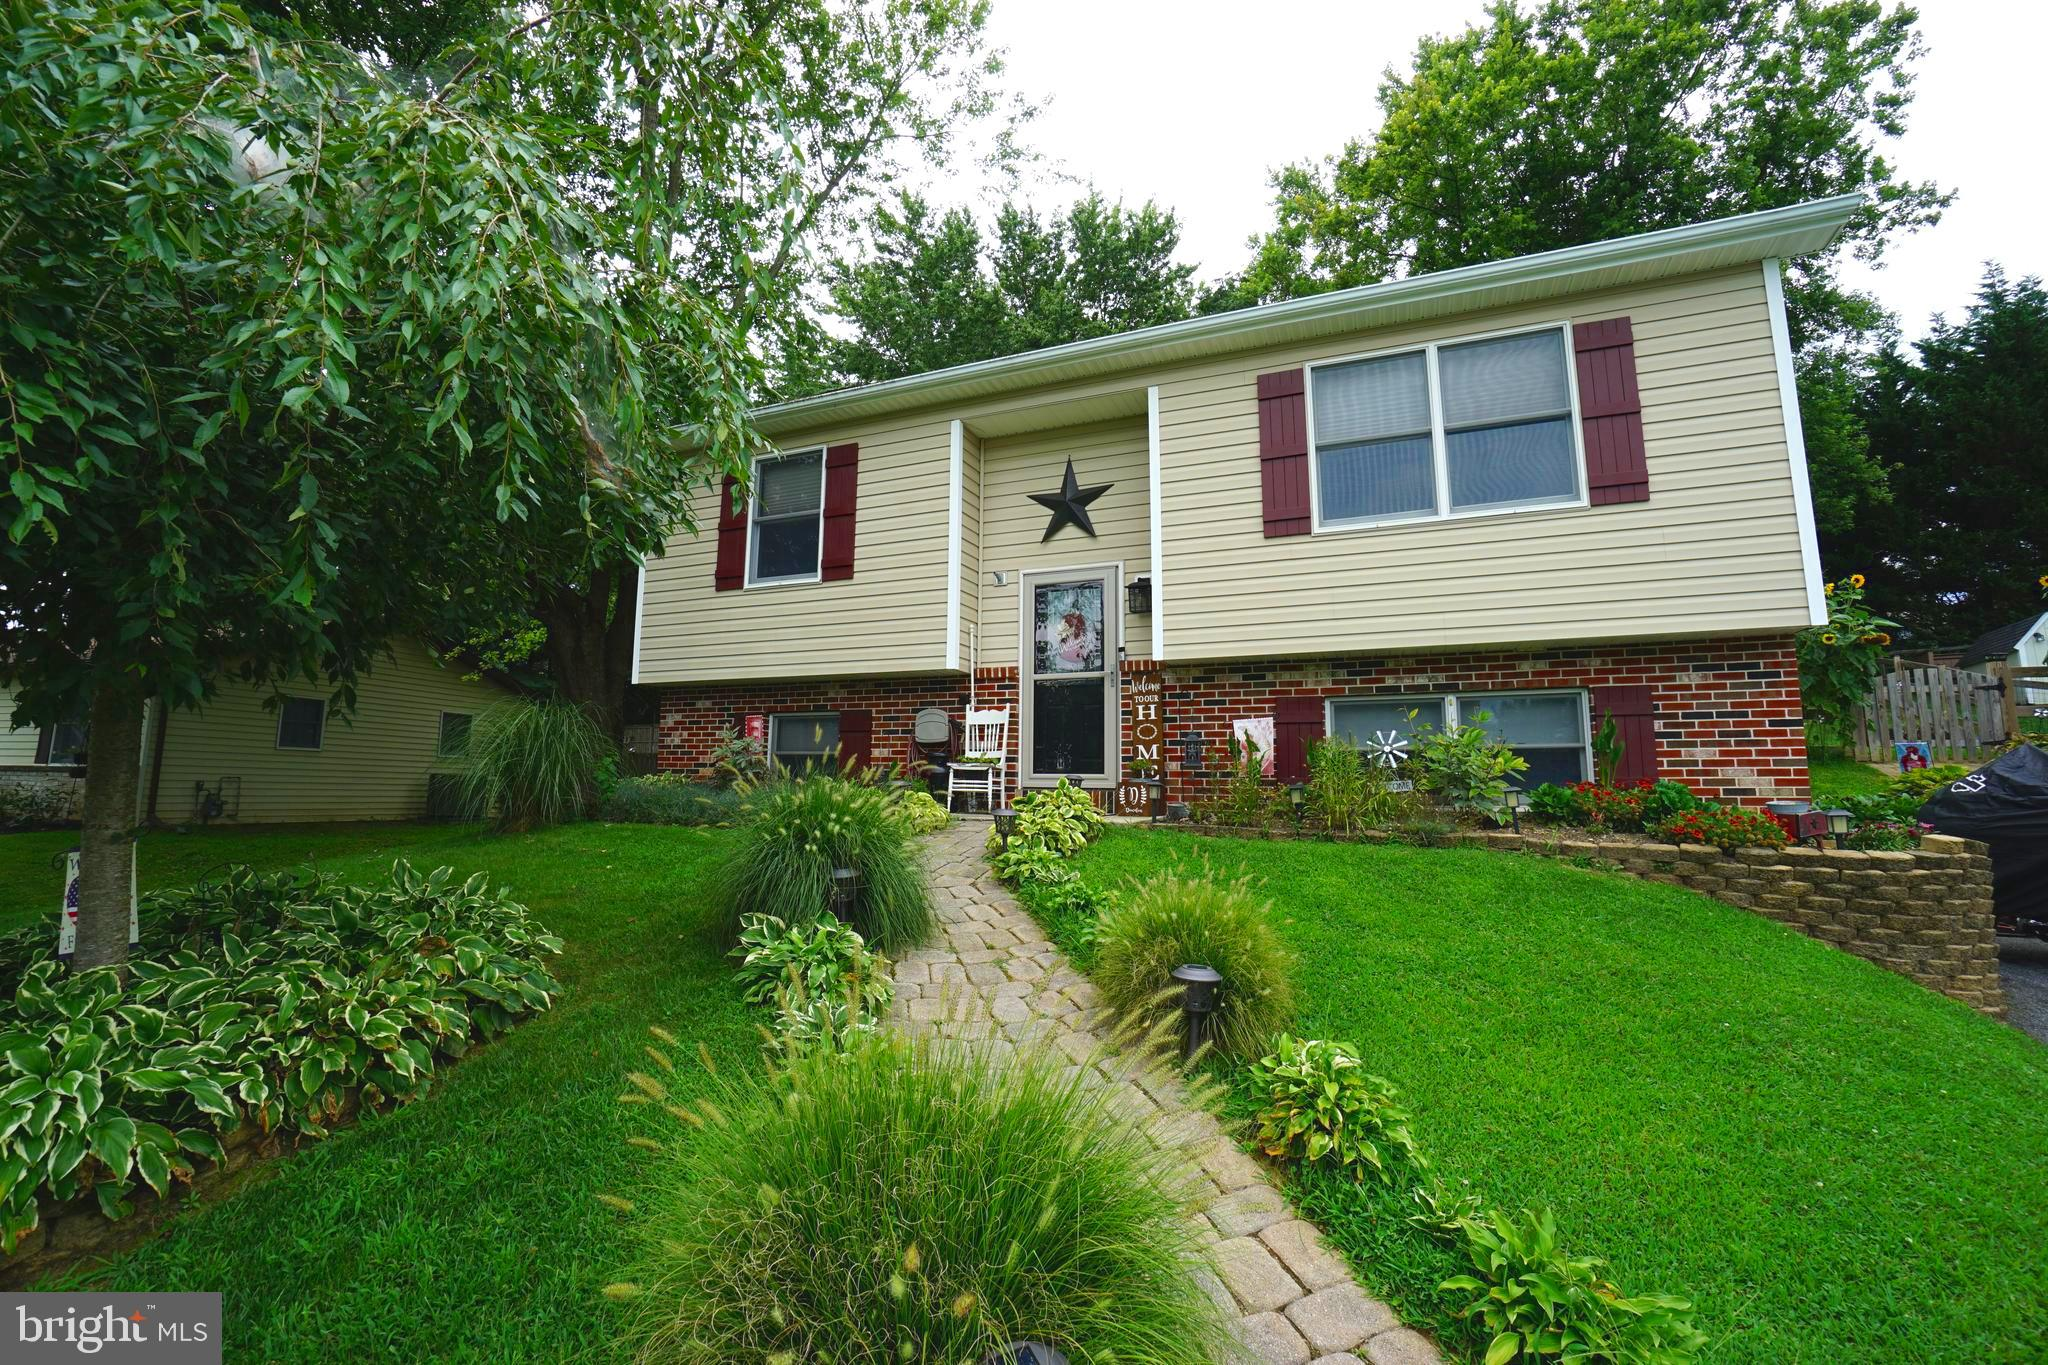 IMMACULATELY MAINTAINED THREE BEDROOM, ONE BATH, SPLIT LEVEL WITH BACKYARD OASIS. TWO MAIN LEVEL BED